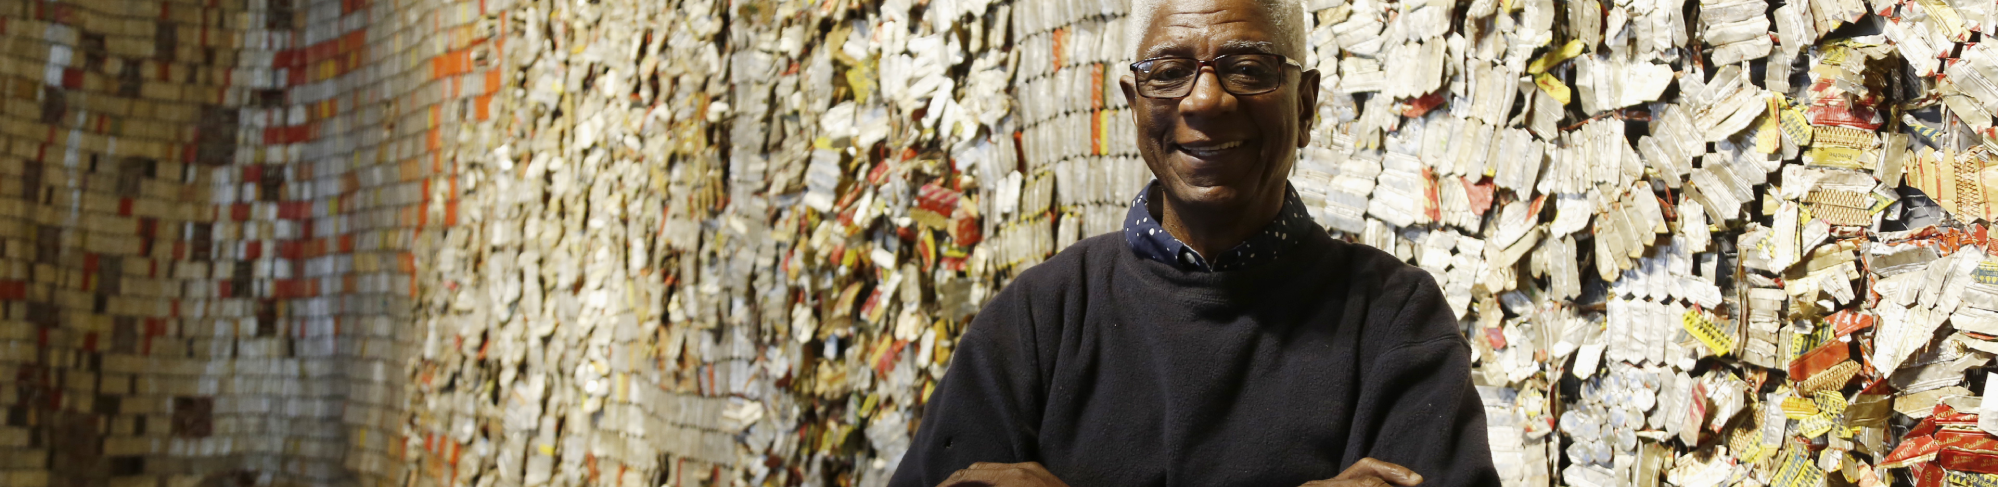 "For the past 30 years, El Anatsui has been known within Africa as one of the continent's most influential sculptors and today he is now also recognized as one of the foremost contemporary artists of his generation.Description of his work Up to 20 assistants help Anatsui flatten aluminum seals taken from thousands of liquor bottles. They then fold them into strips that are woven together with copper wire, resulting in draping cloth-like pieces that often reach sizes of 30 feet or more. Anatsui's sculptures not only transform common materials and impart new meaning to them, they also continuously evolve undergoing transformations themselves each time they are shown. About El Anatsui El Anatsui was born in 1944 in Anyako, Ghana. He earned a Bachelor's Degree in Sculpture and a Postgraduate Diploma in Art Education from the University of Science and Technology, Kumasi, Ghana. Much of Anatsui's early work made use of scorching wood with fire. Before venturing into his current ""cloth series"" he worked with the concept of fragility through ceramics and created sculptures with a chainsaw and wood. Exhibitions Many major institutions throughout the world have exhibited Anatsui's work. He received an honorable mention at the 44th Venice Biennale. In 2007 El Anatsui exhibited at the 52nd Venice Biennale with a site-specific installation, transforming one of Venice's most celebrated Gothic landmarks by wrapping the façade of the Palazzo Fortuny in a vast metal cloth. El Anatsui collectors Works by Anatsui can be seen in the permanent collections of The Metropolitan Museum of Art, NY; The Museum of Modern Art, NY; National Museum of African Art, Smithsonian Institution, Washington DC; The British Museum, London and the Pompidou Center, Paris, France, as well as many other institutions. Anatsui lives and works in Nigeria where he is a Professor of Sculpture at the University of Nigeria, Nsukka. October Gallery, London and David Krut Fine Art, New York represents El Anatsui. This is an extract from Art Interview's talk with El Anatsui:"